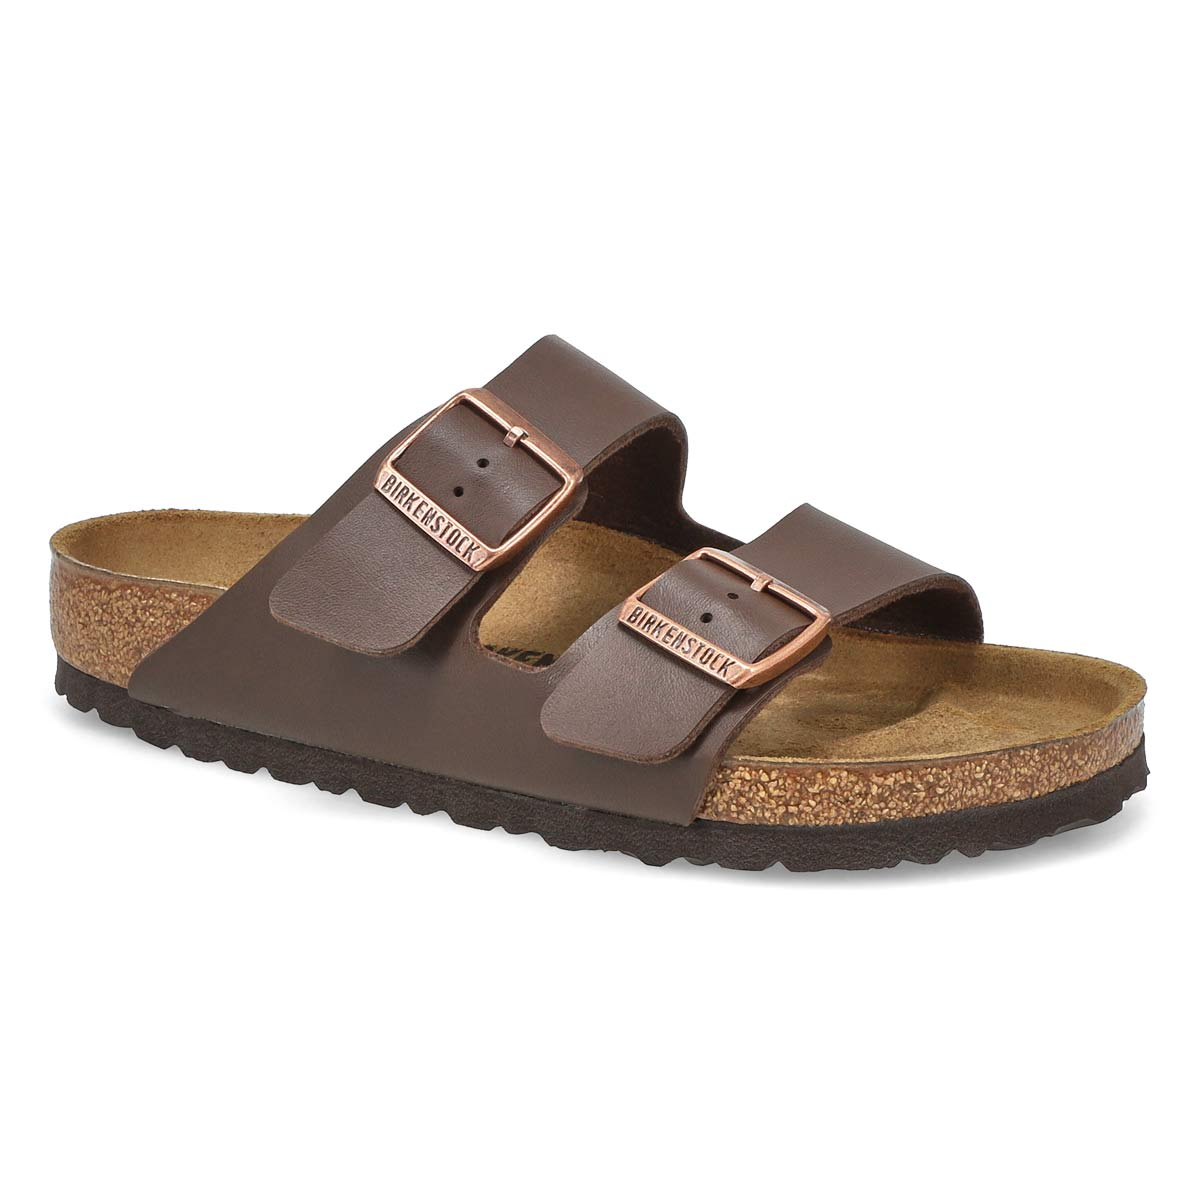 dfefcd84bc5fb0 birkenstock sandals cheap   OFF54% The Largest Catalog Discounts